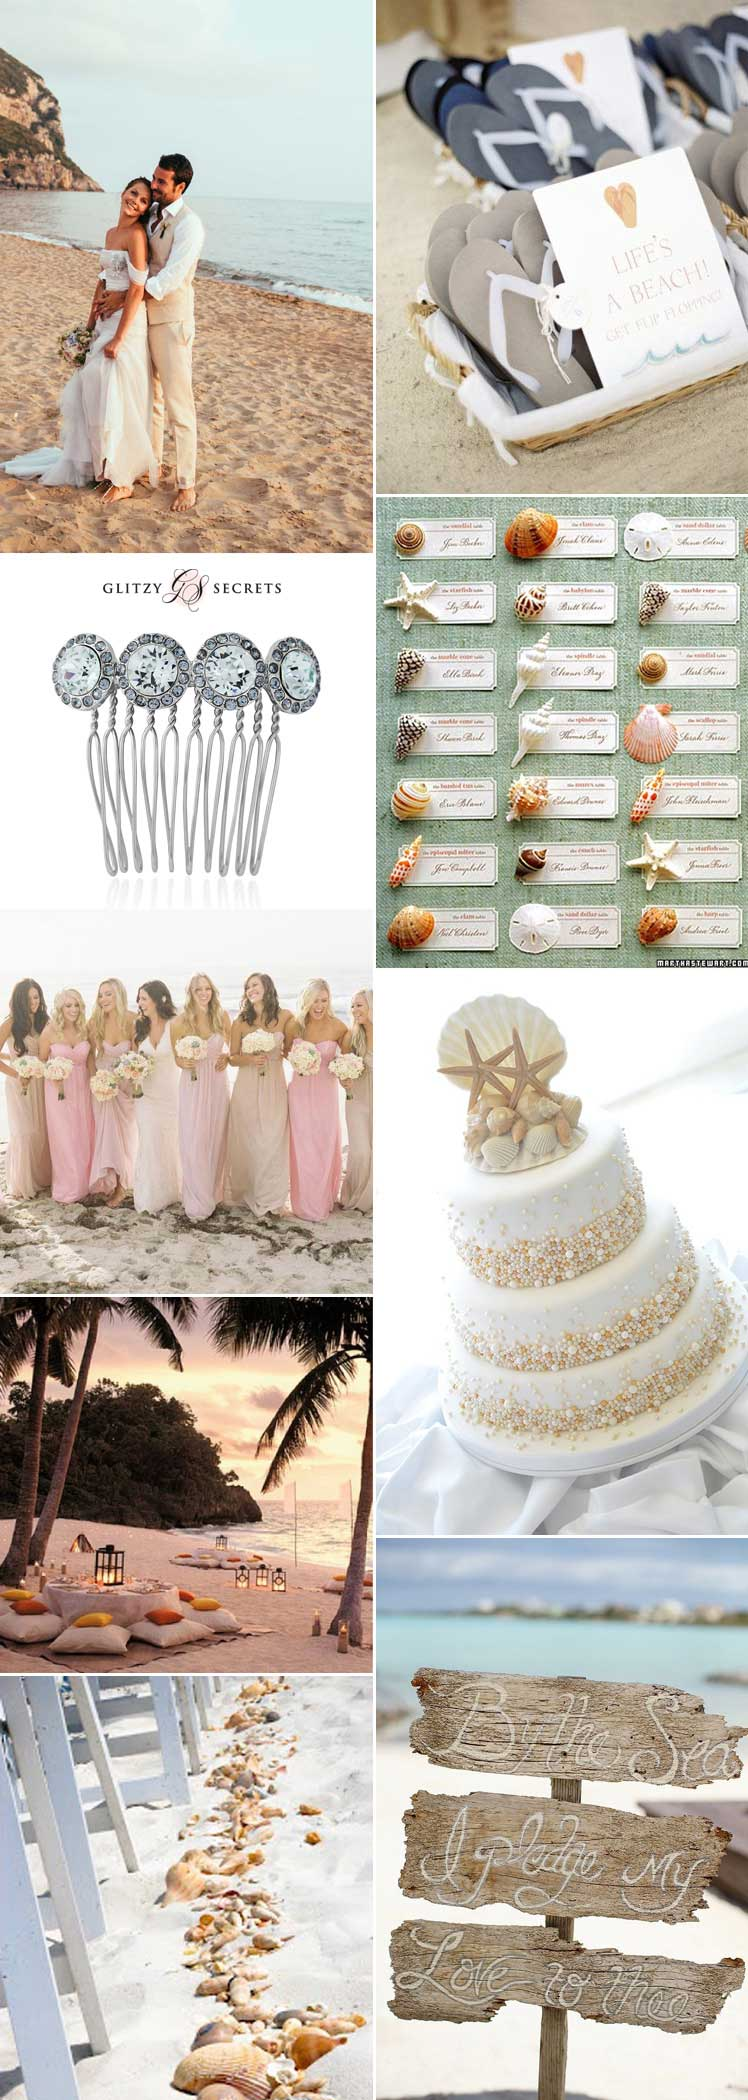 Dreamy beach wedding ideas for a romantic day